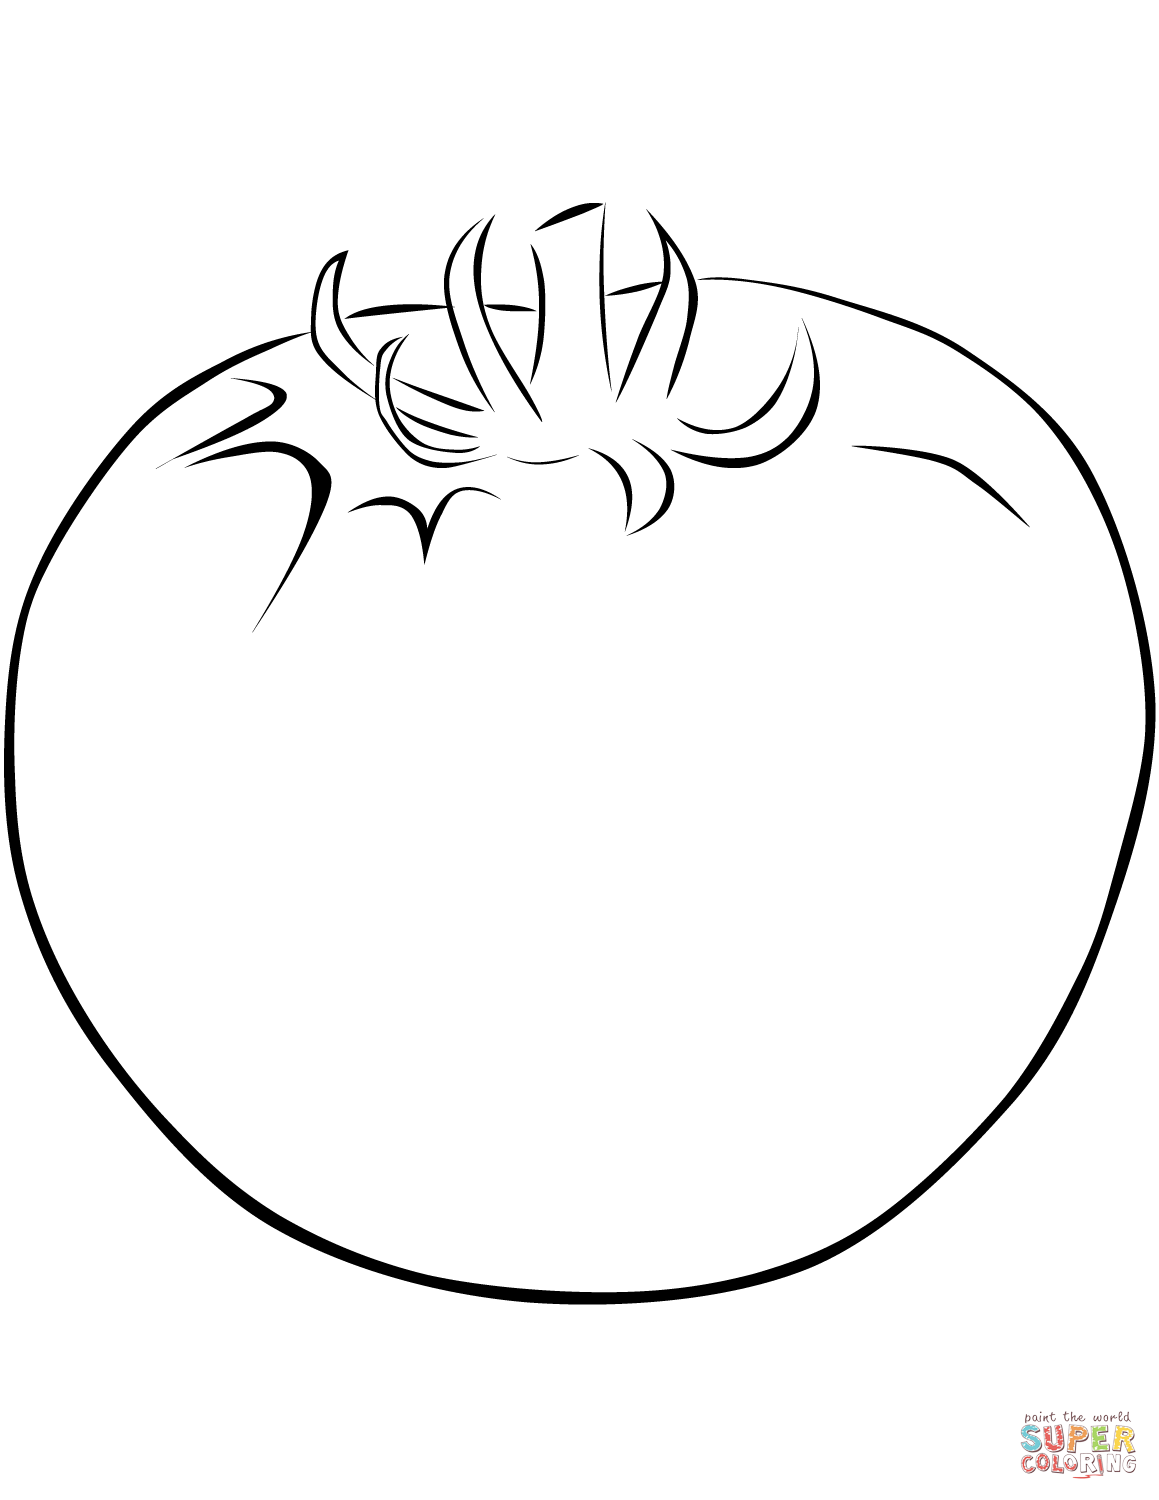 coloring tomato template tomato coloring pages tomato template coloring